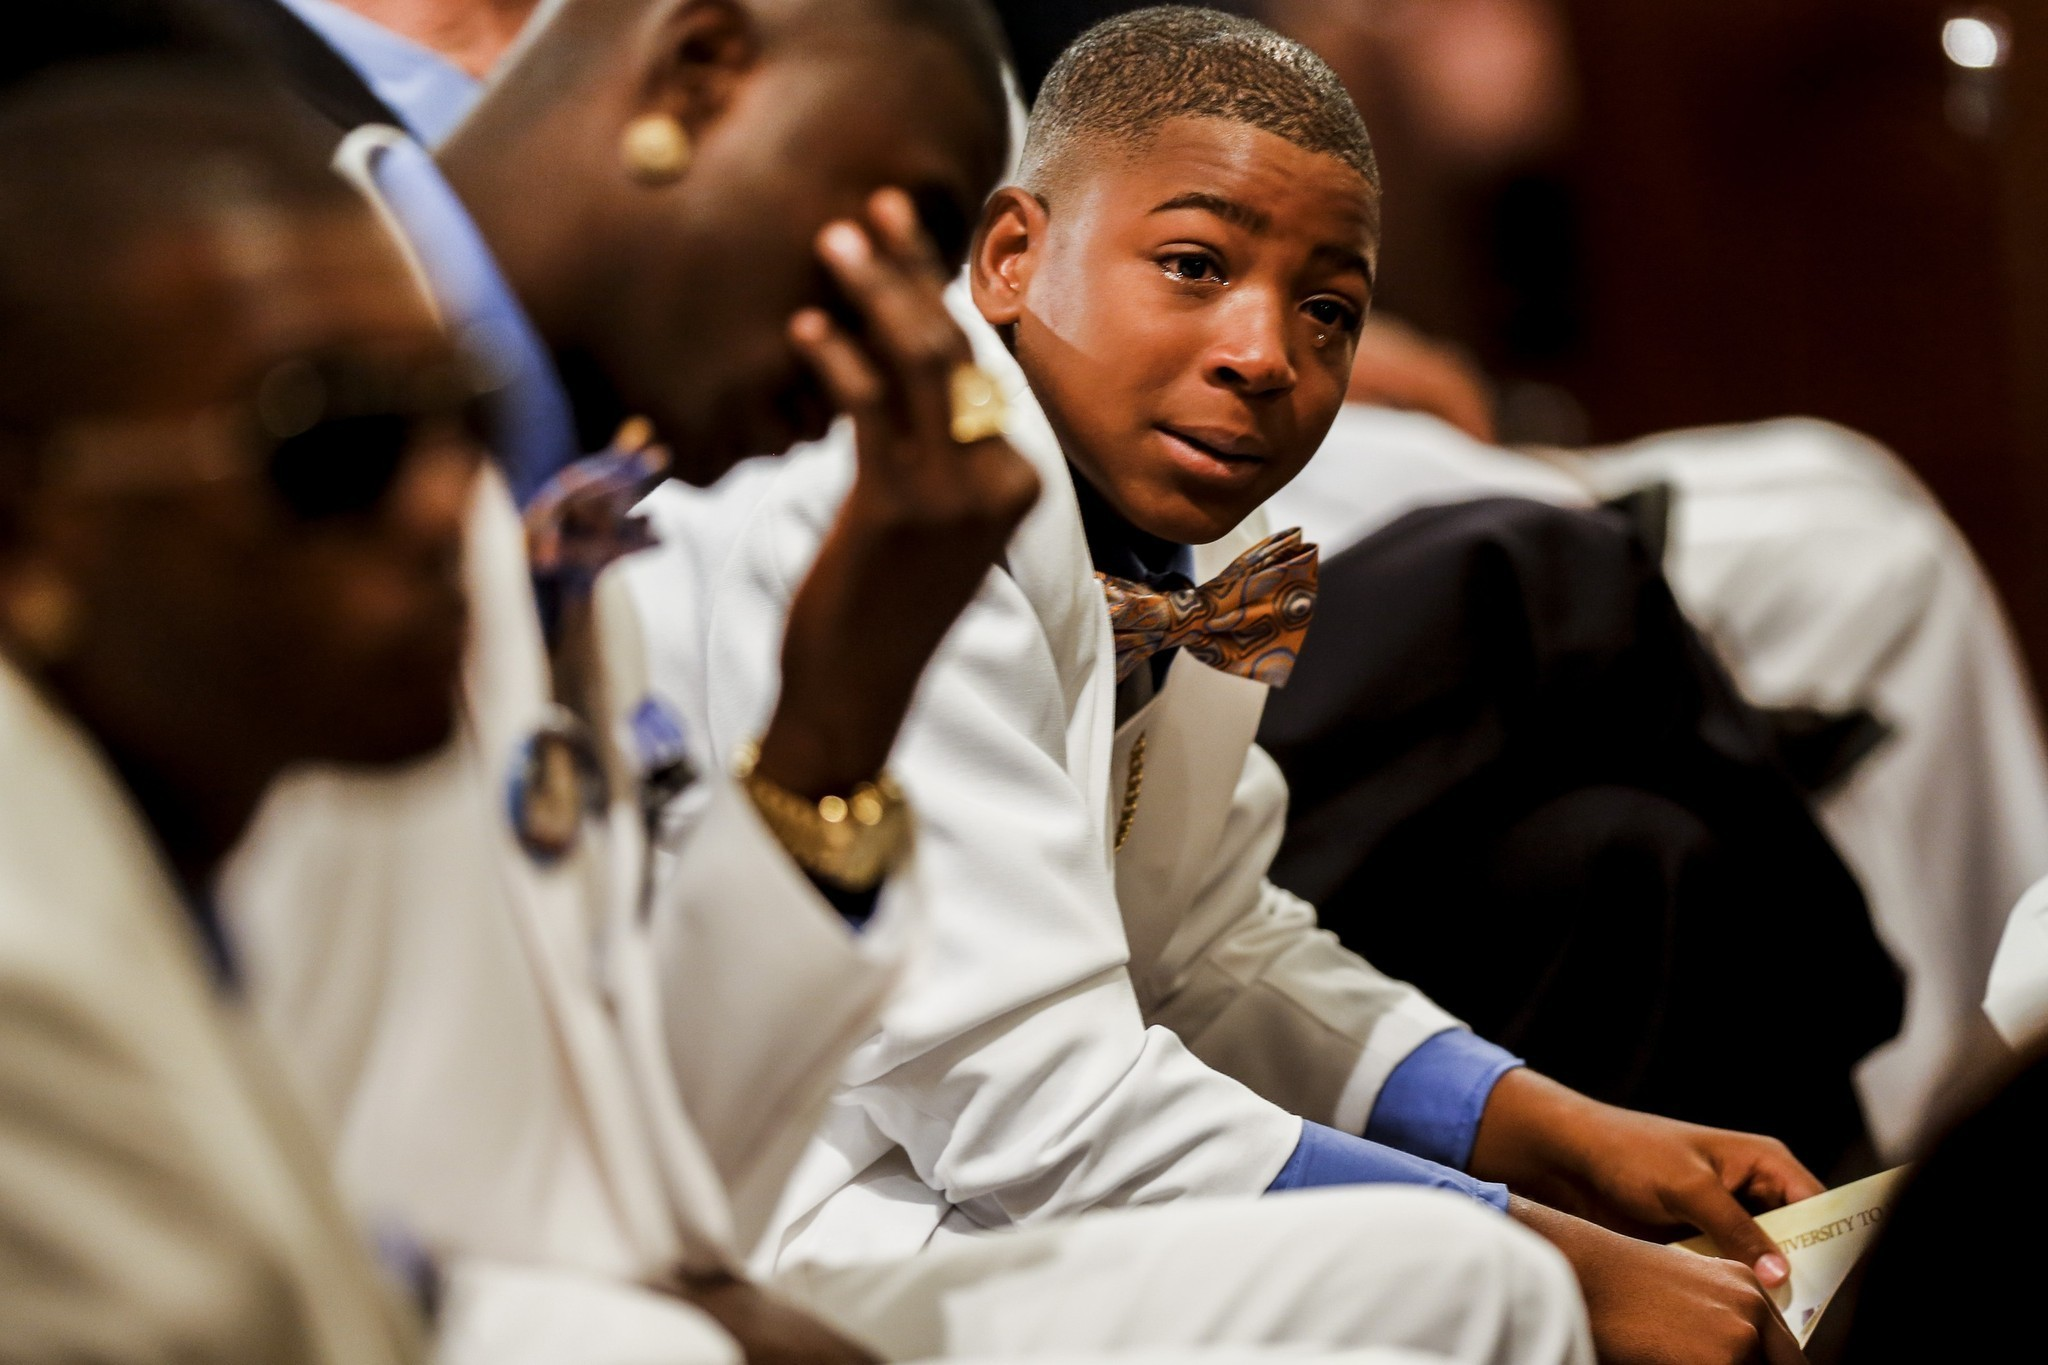 http://www.trbimg.com/img-54028a2a/turbine/la-me-ezell-ford-funeral-20140830-pictures